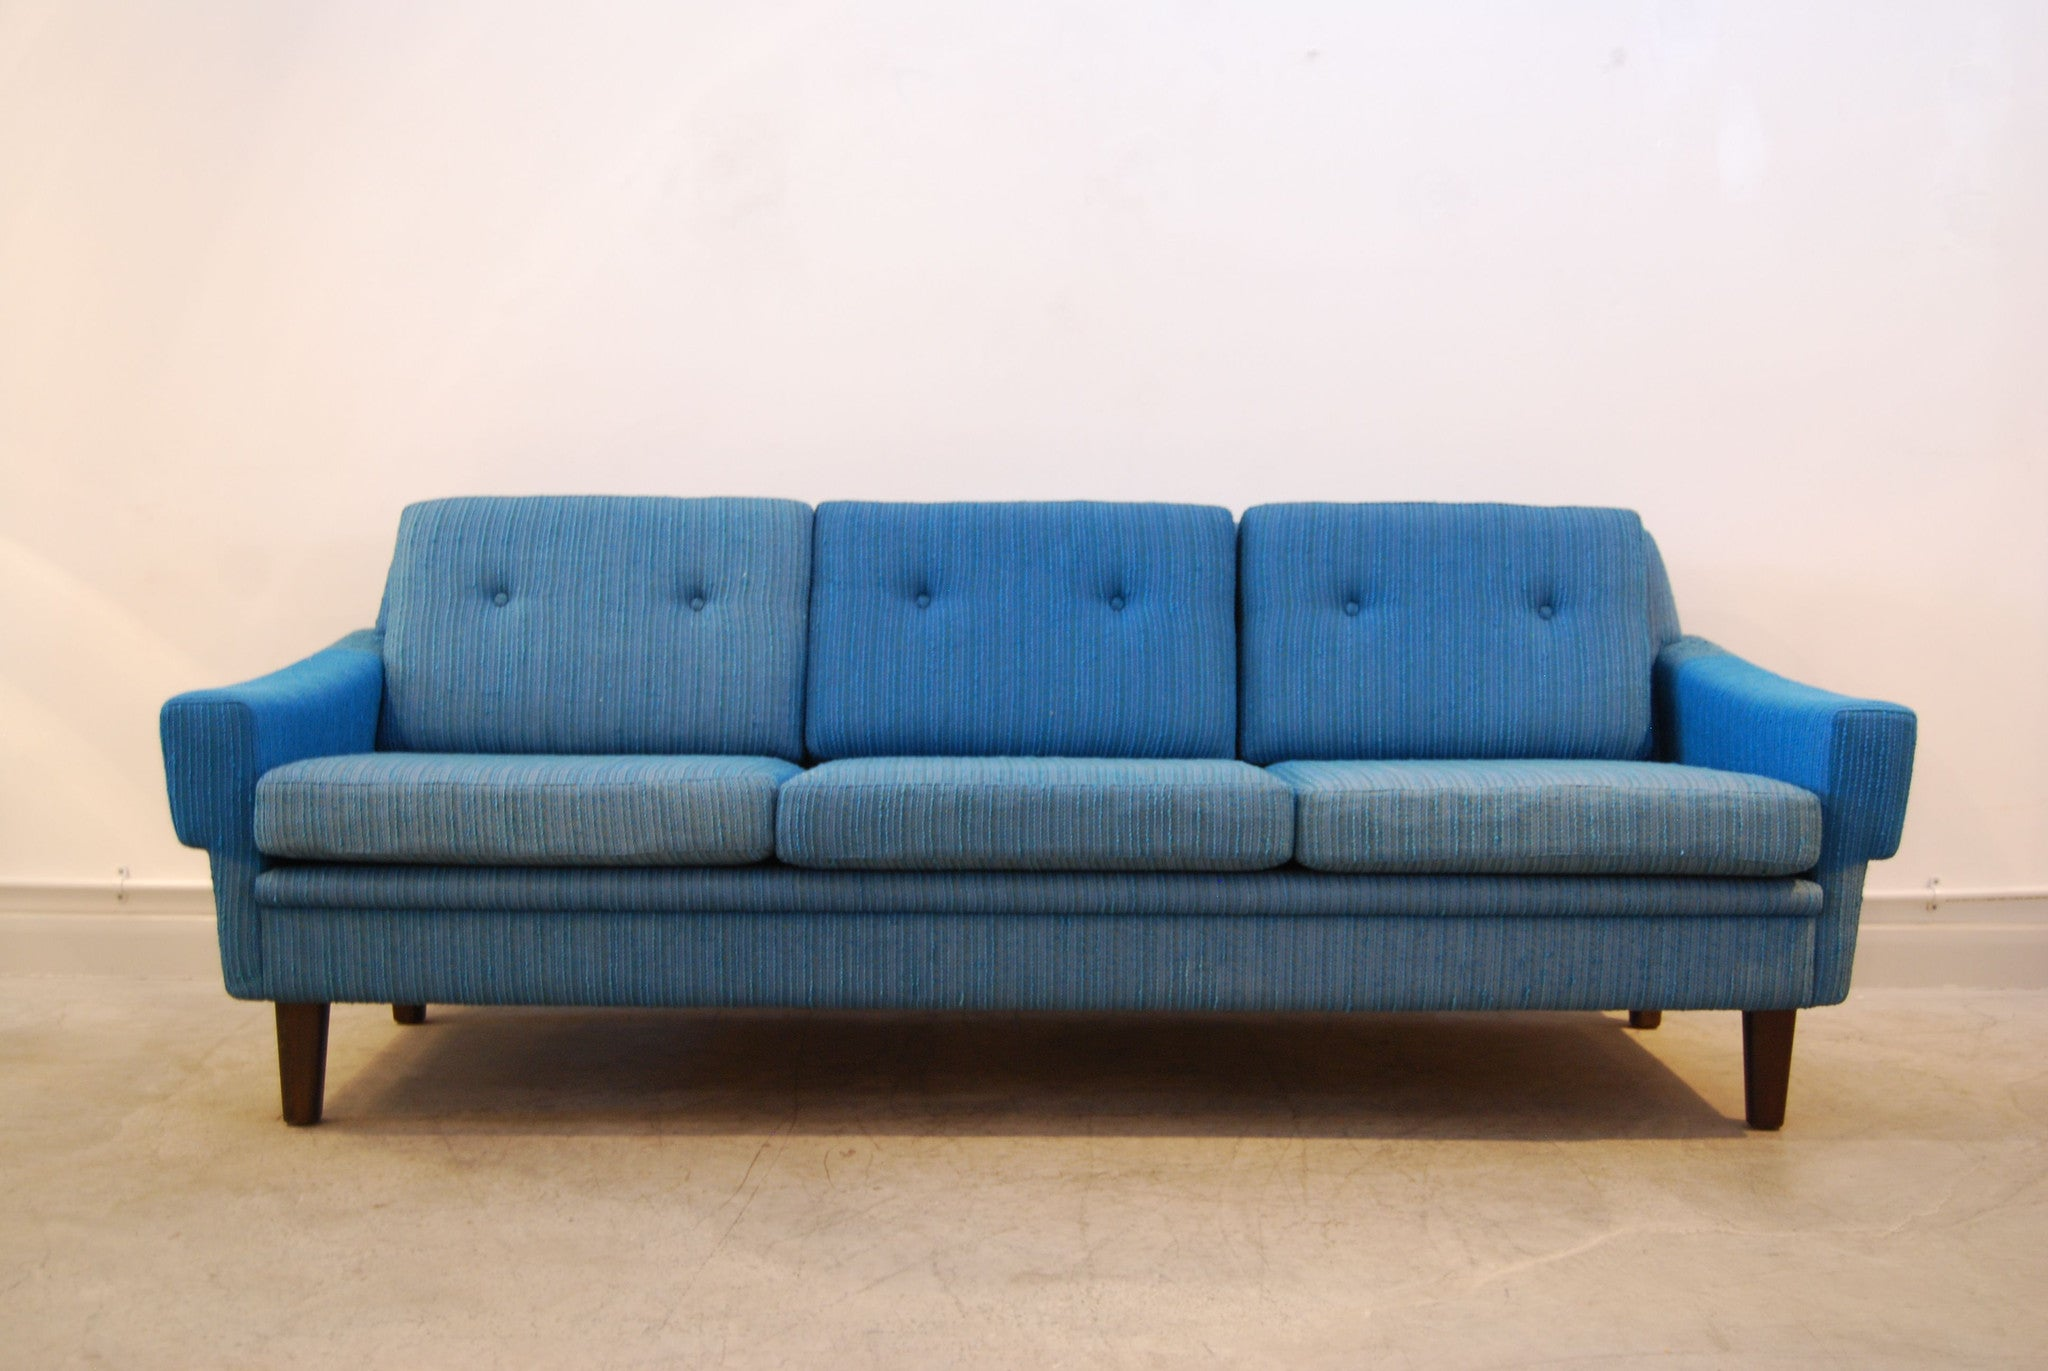 Sea blue three seat sofa